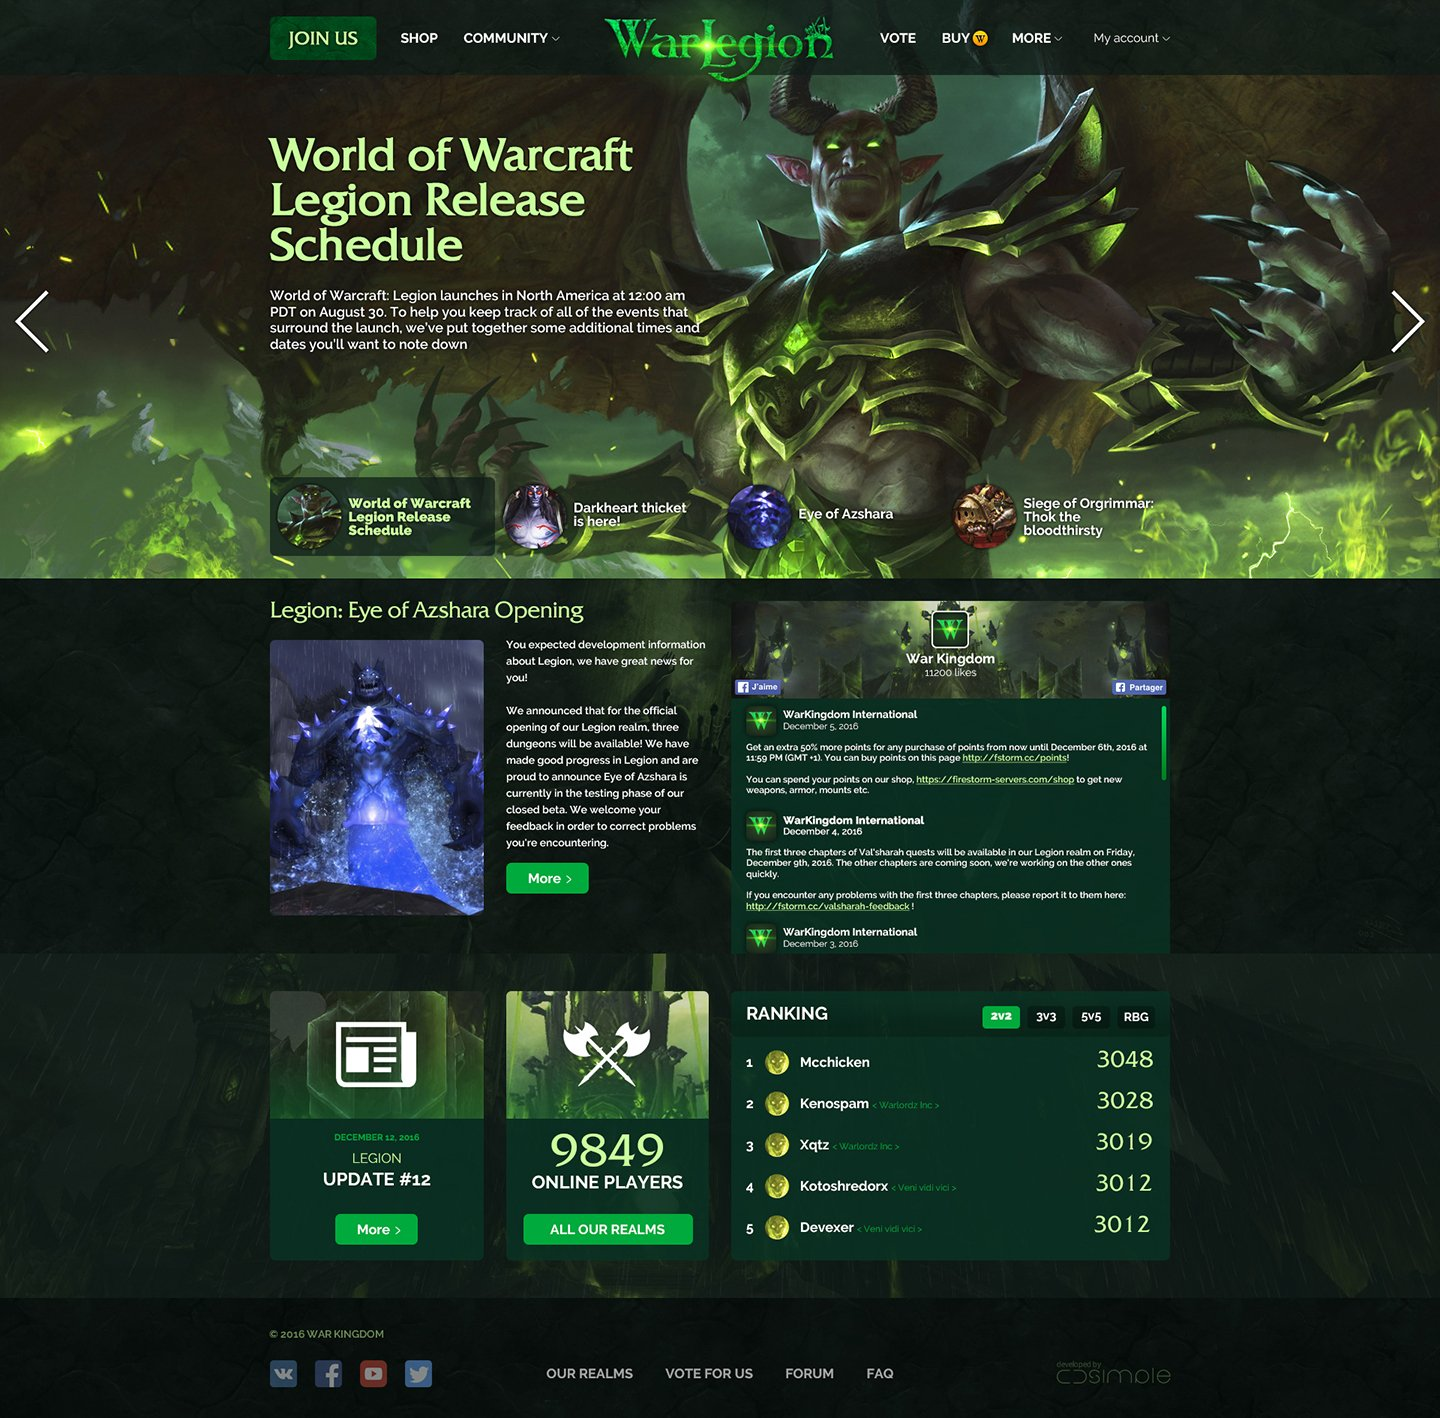 WarLegion > Website for private server World of Warcraft. Main page